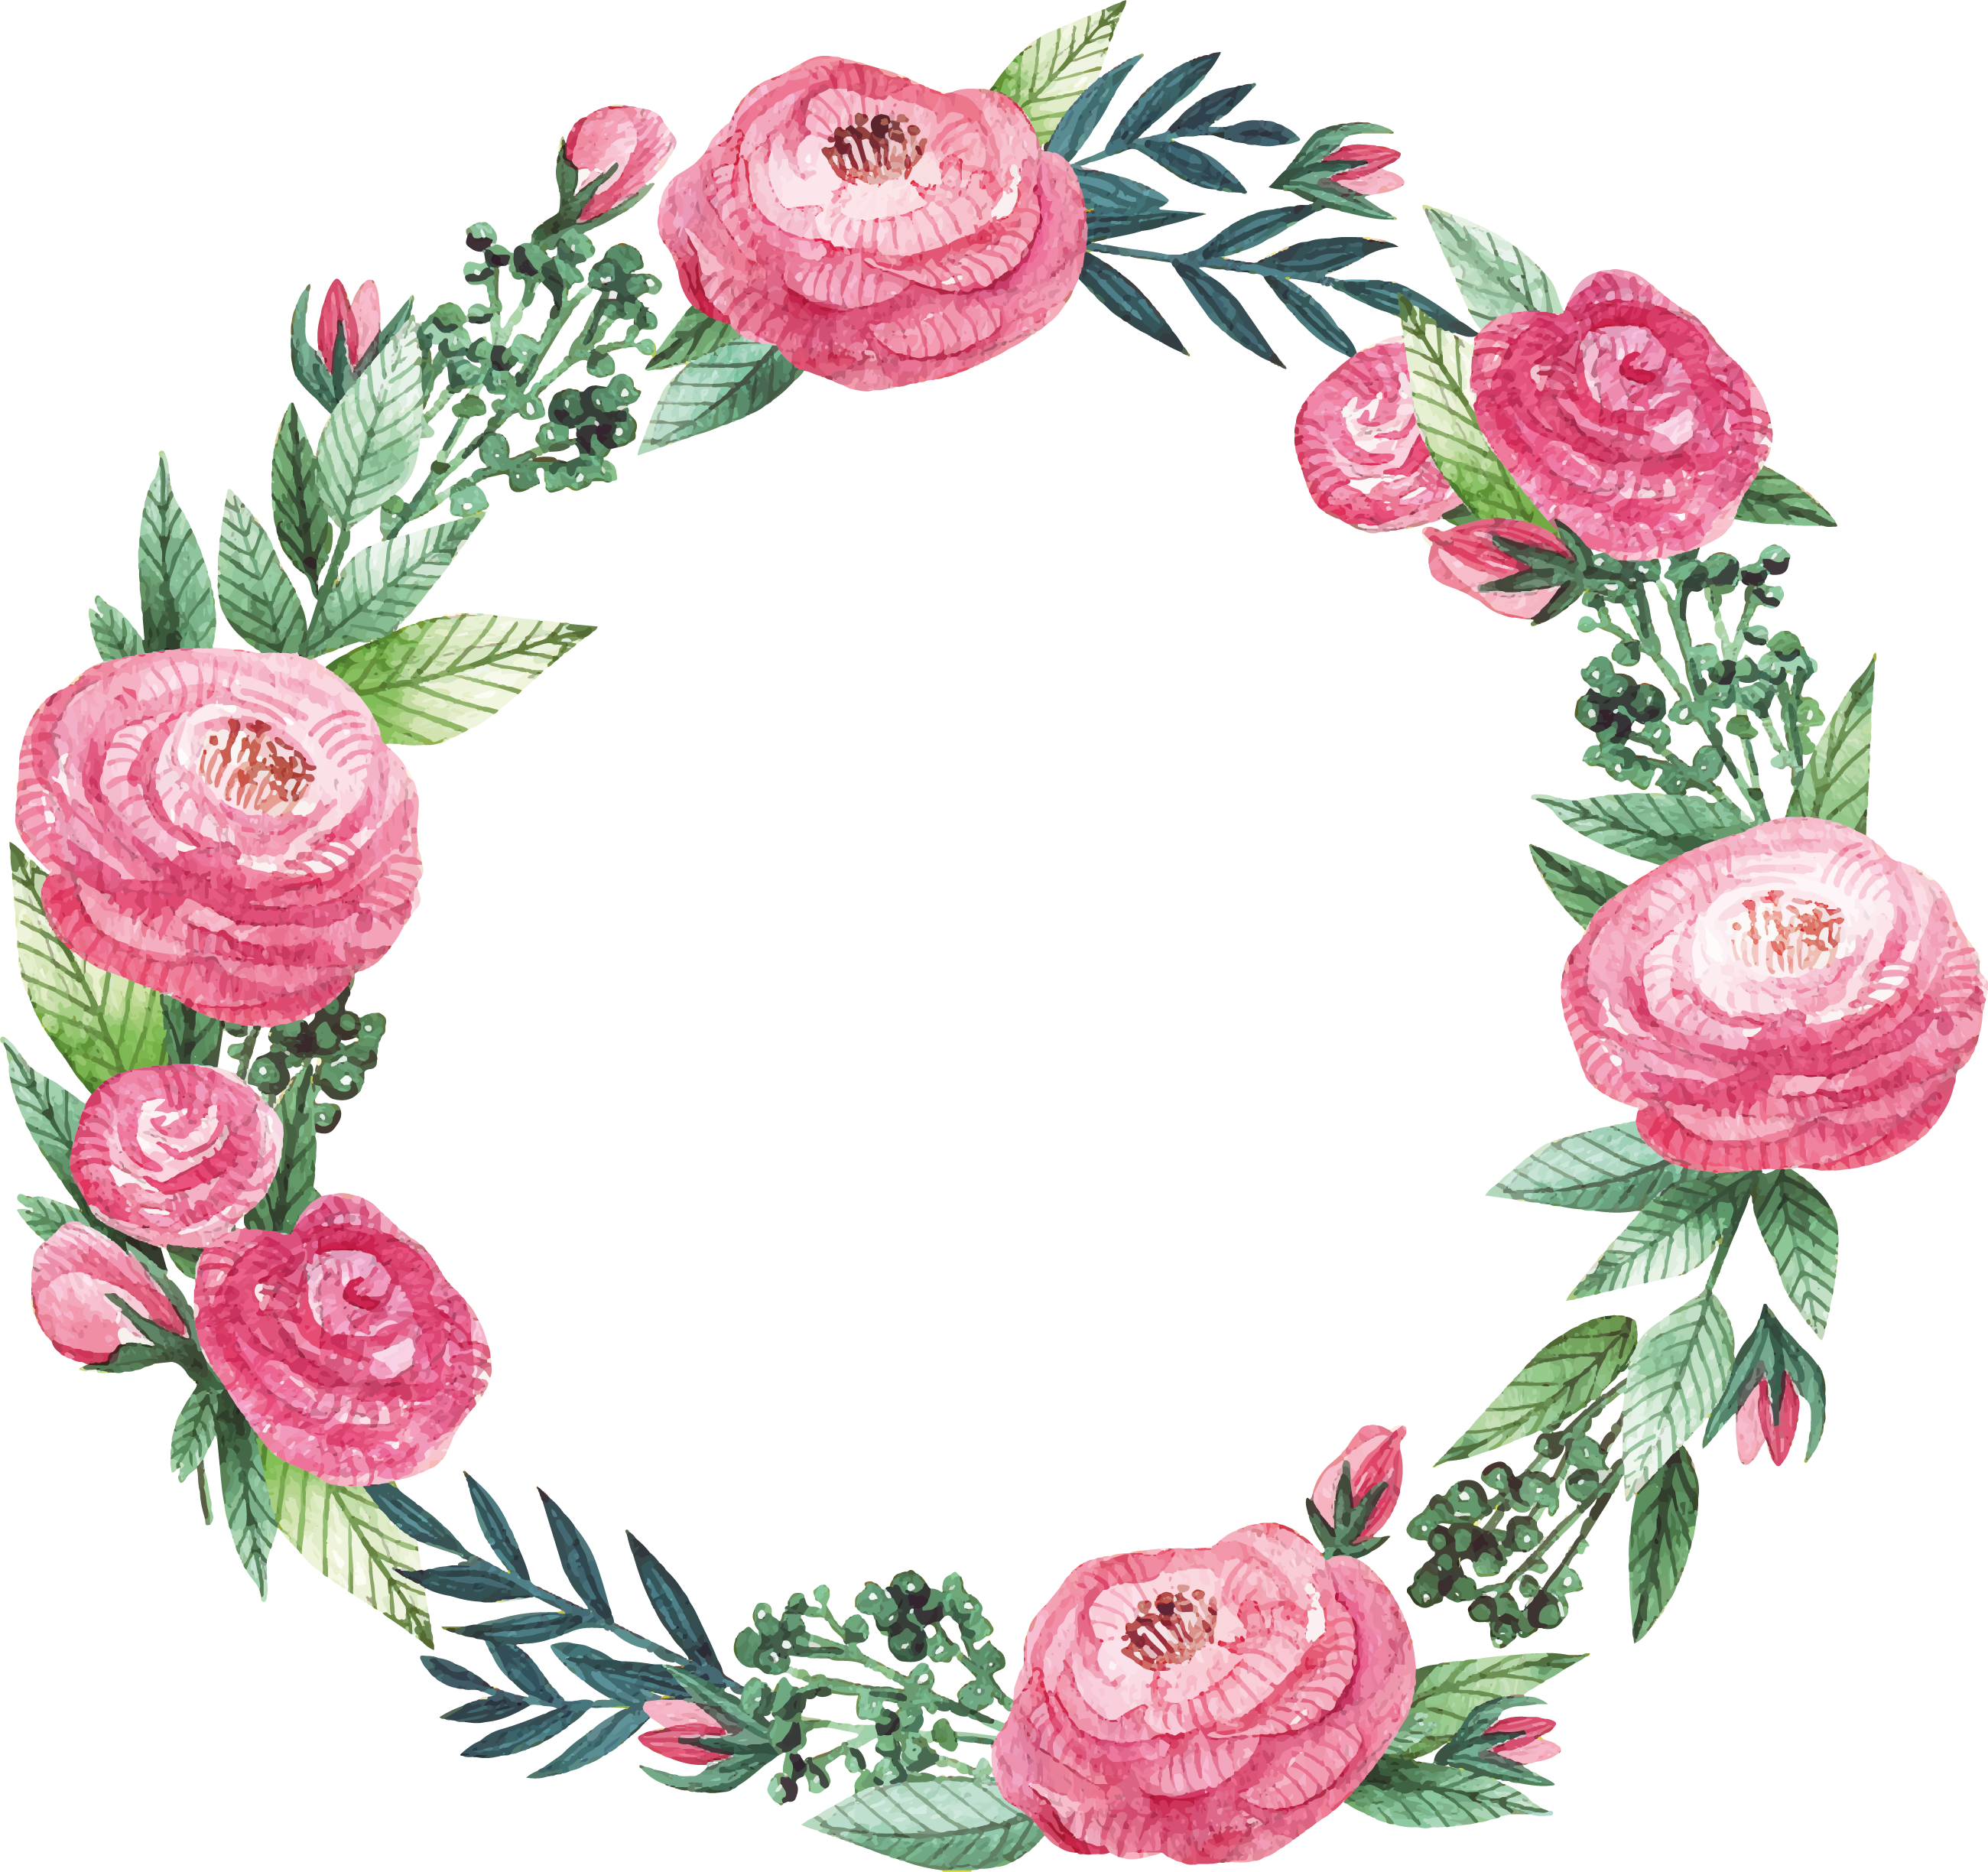 freepik com floral frame flower drawing floral wreath watercolor freepik com floral frame flower